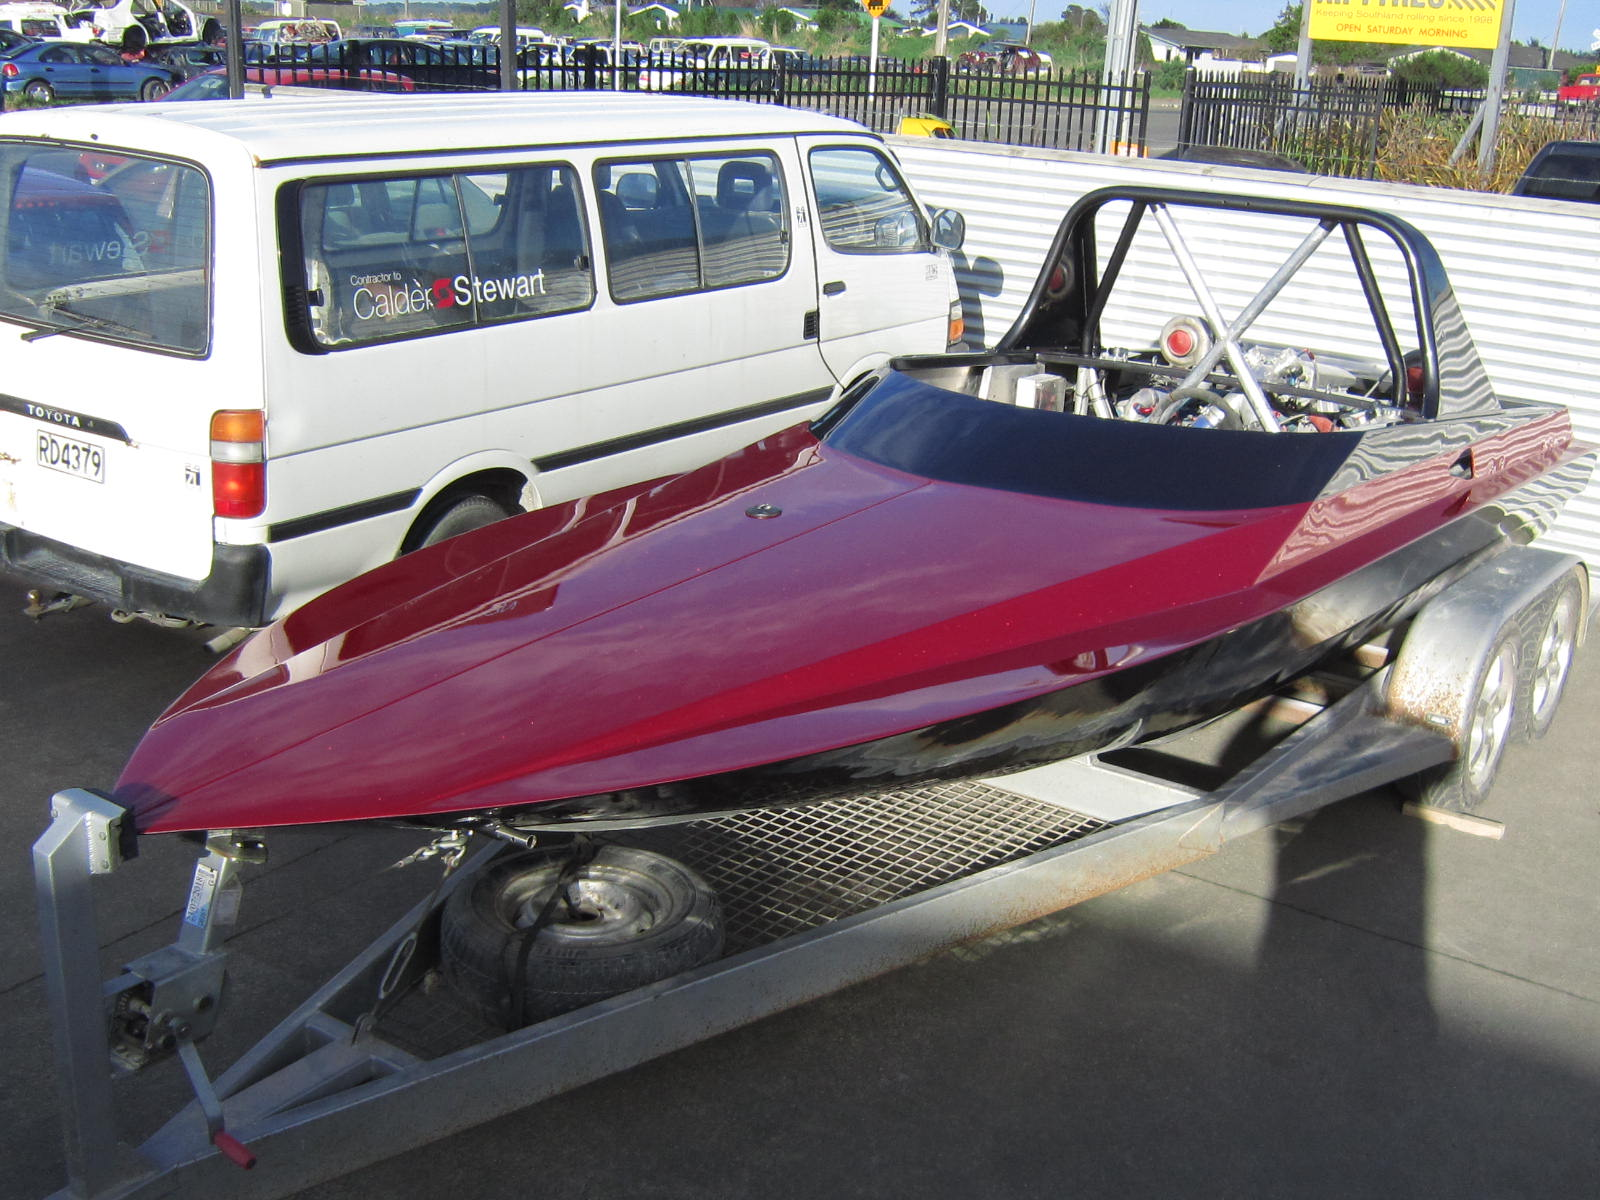 Jagged Edge Racing Boat